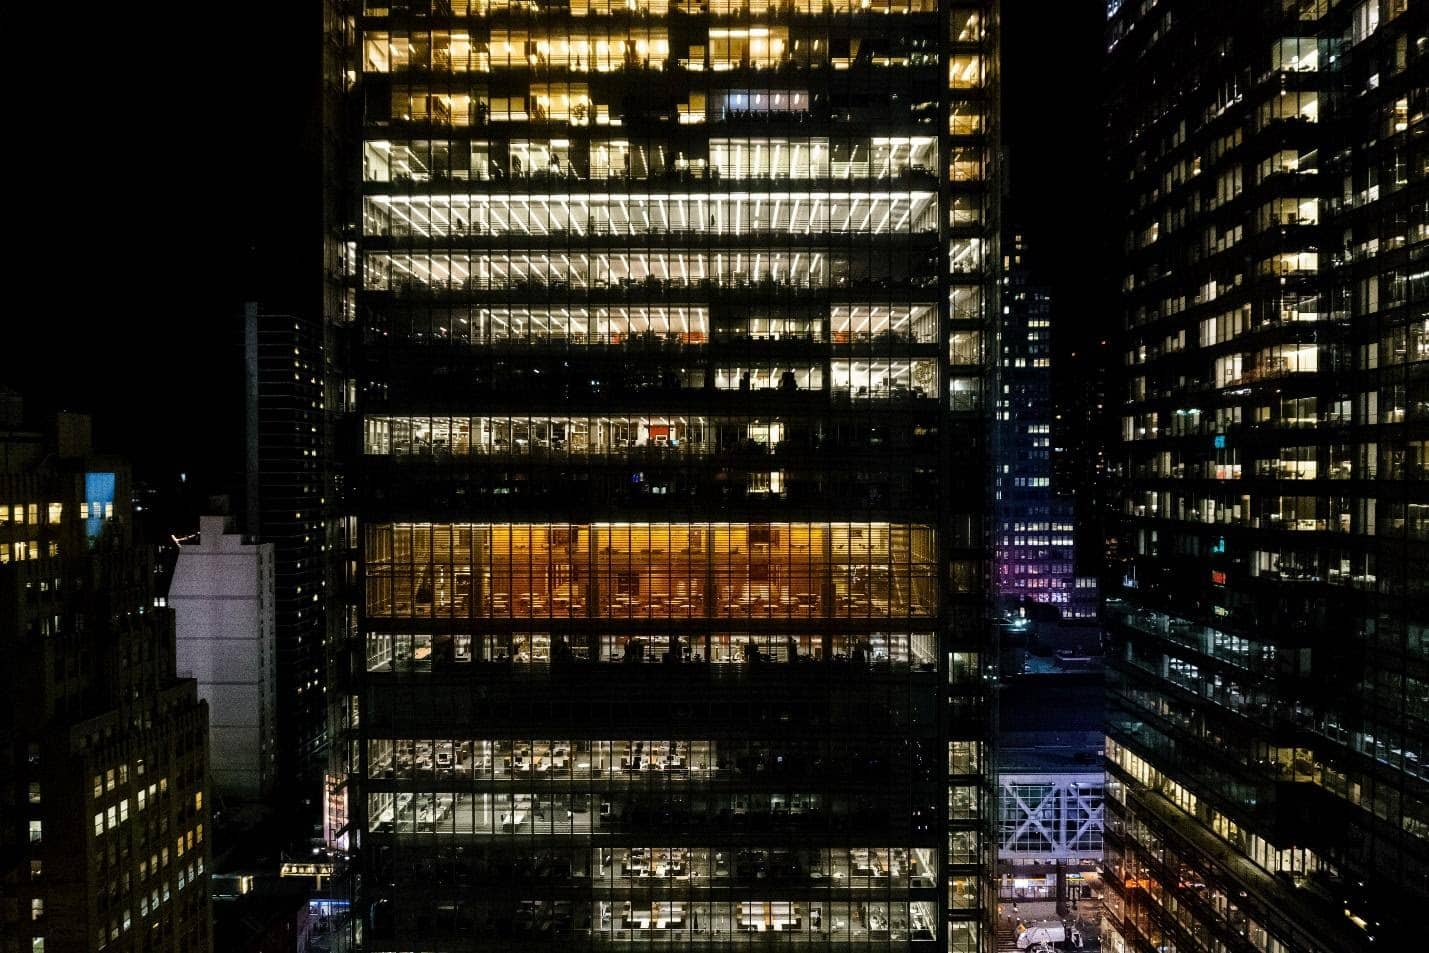 New York City office lit up at night